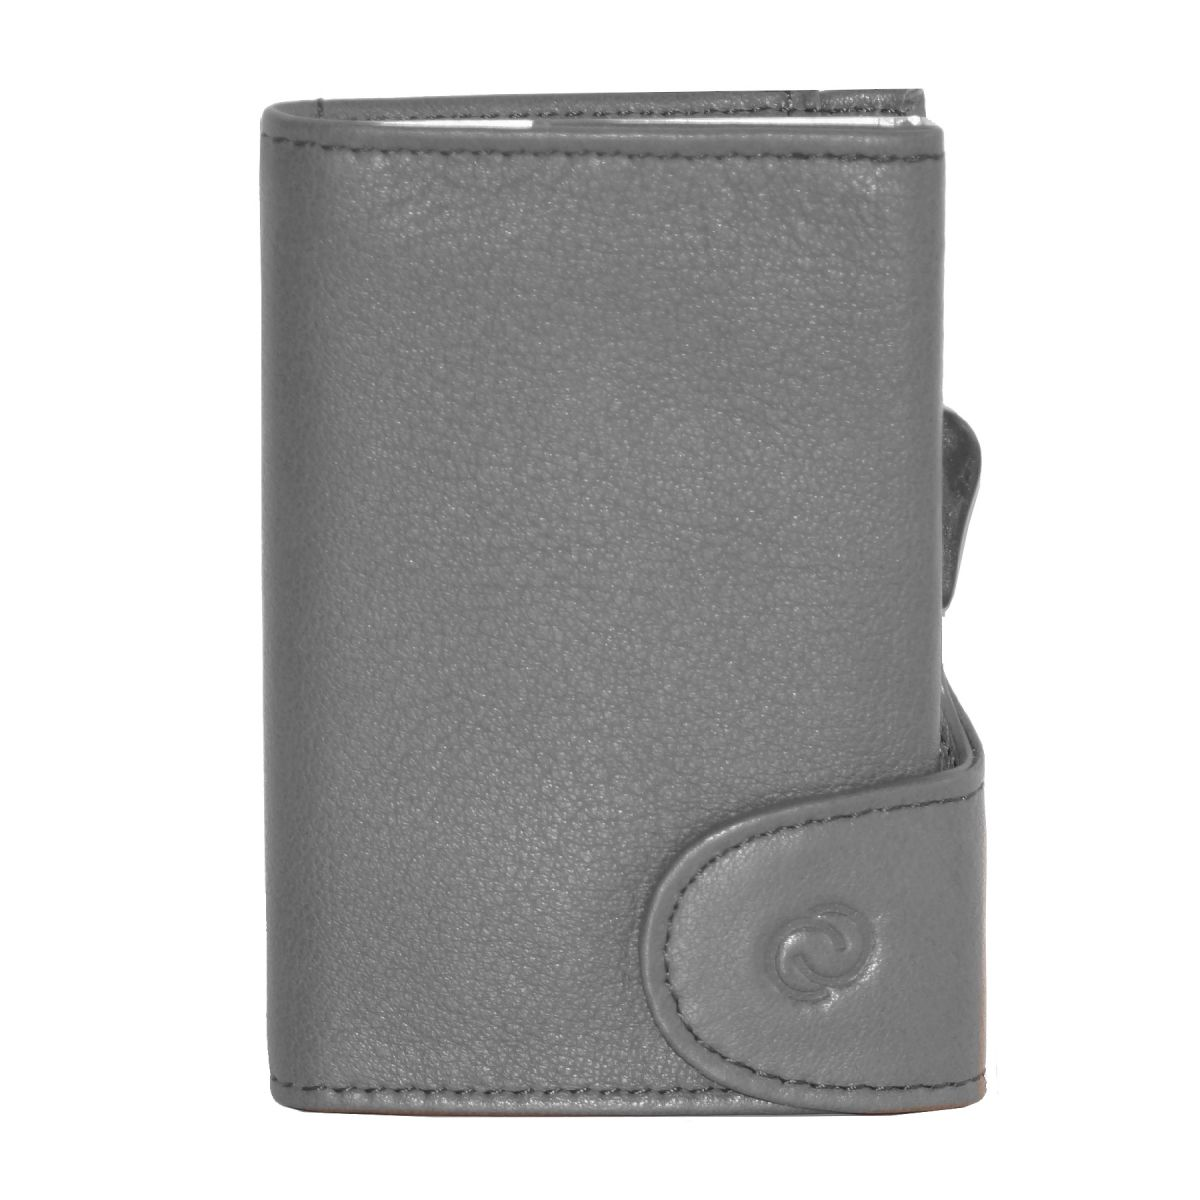 Aluminum Card Holder with PU Leather with Coin Pouch - Grey